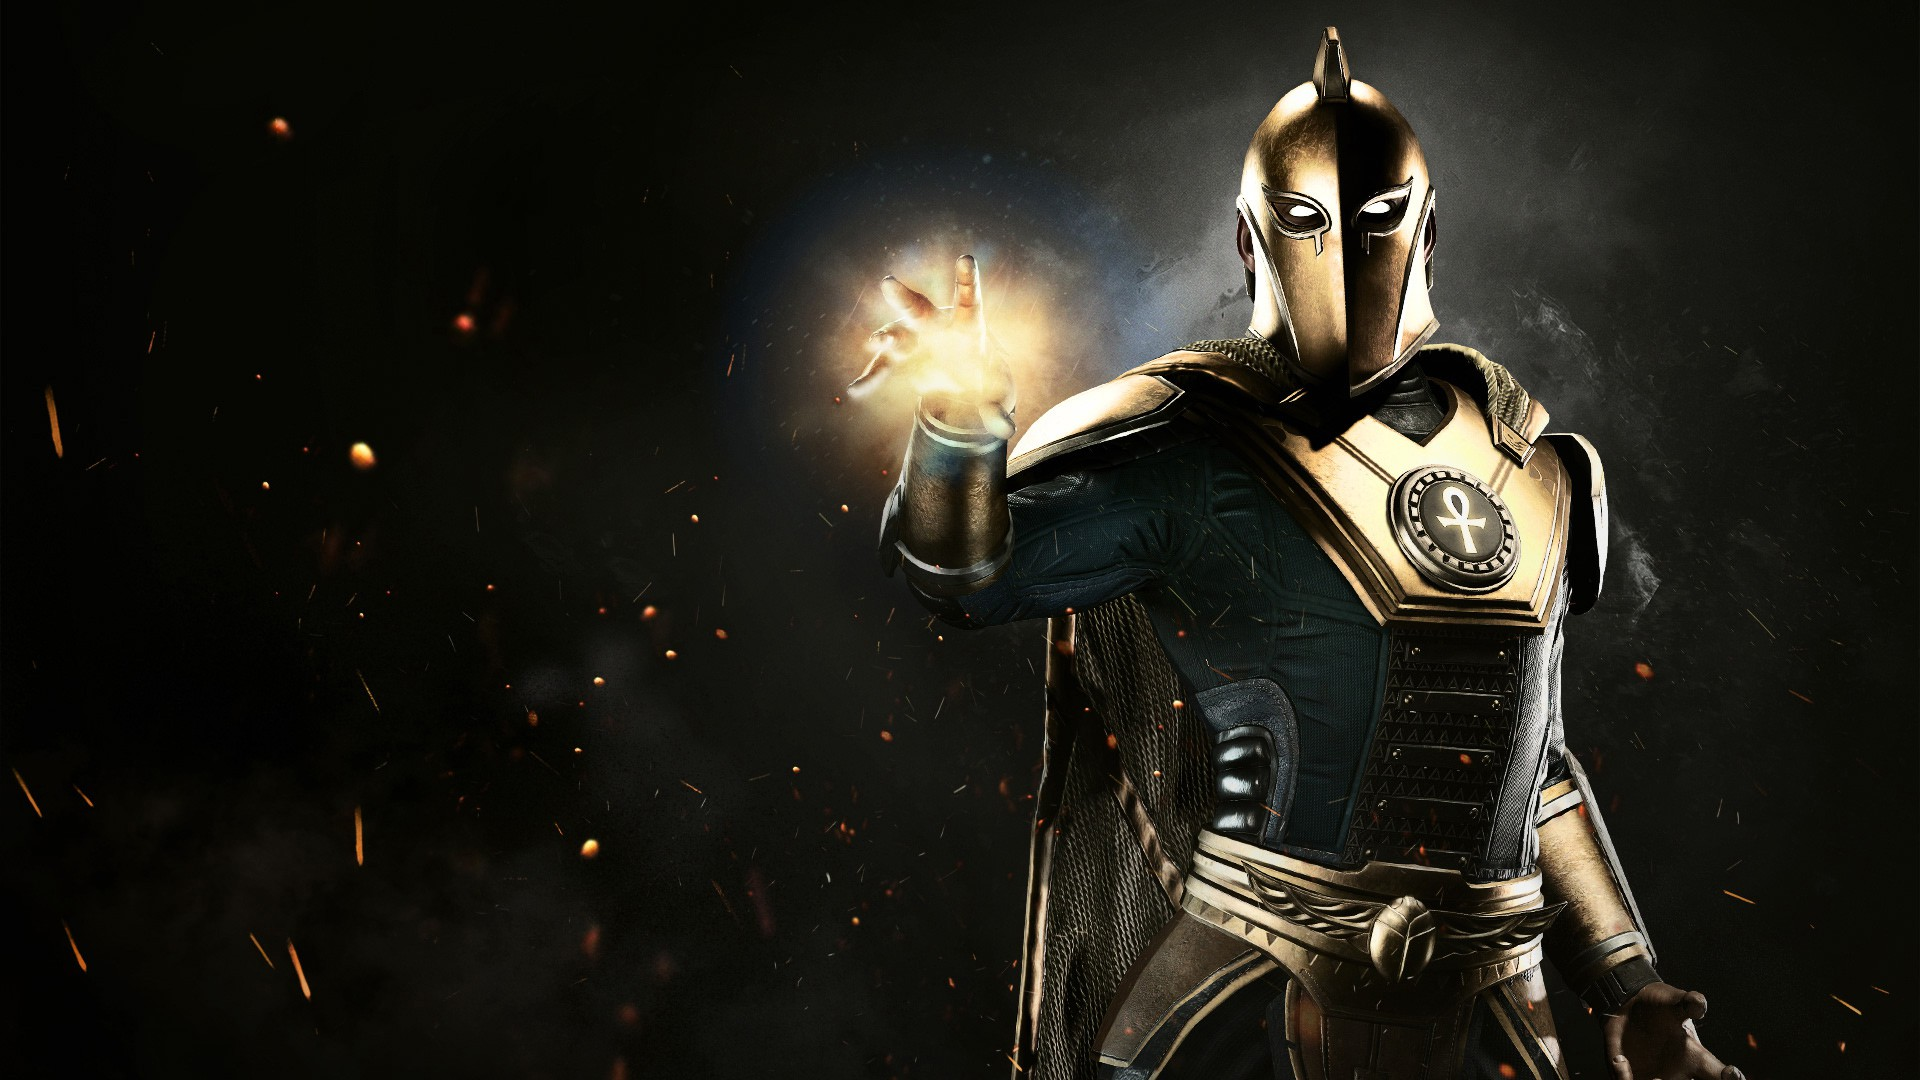 Doctor Fate in Injustice 2 Game 1080P Wallpapers 1920x1080